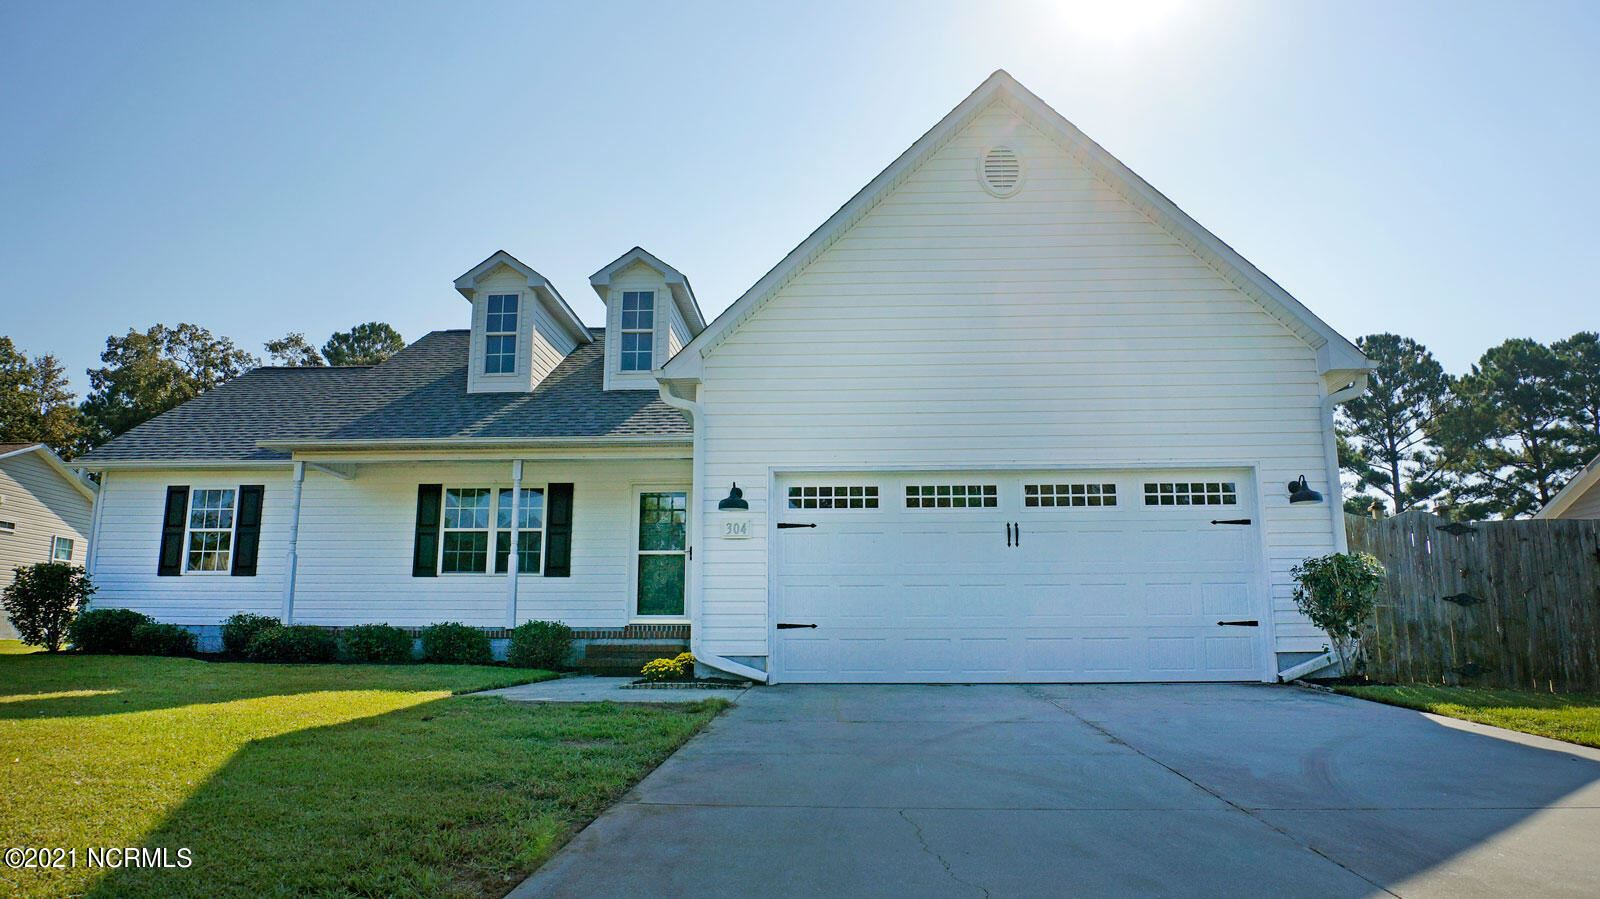 Photo of 304 N Grazing Court, Sneads Ferry, NC 28460 (MLS # 100293393)